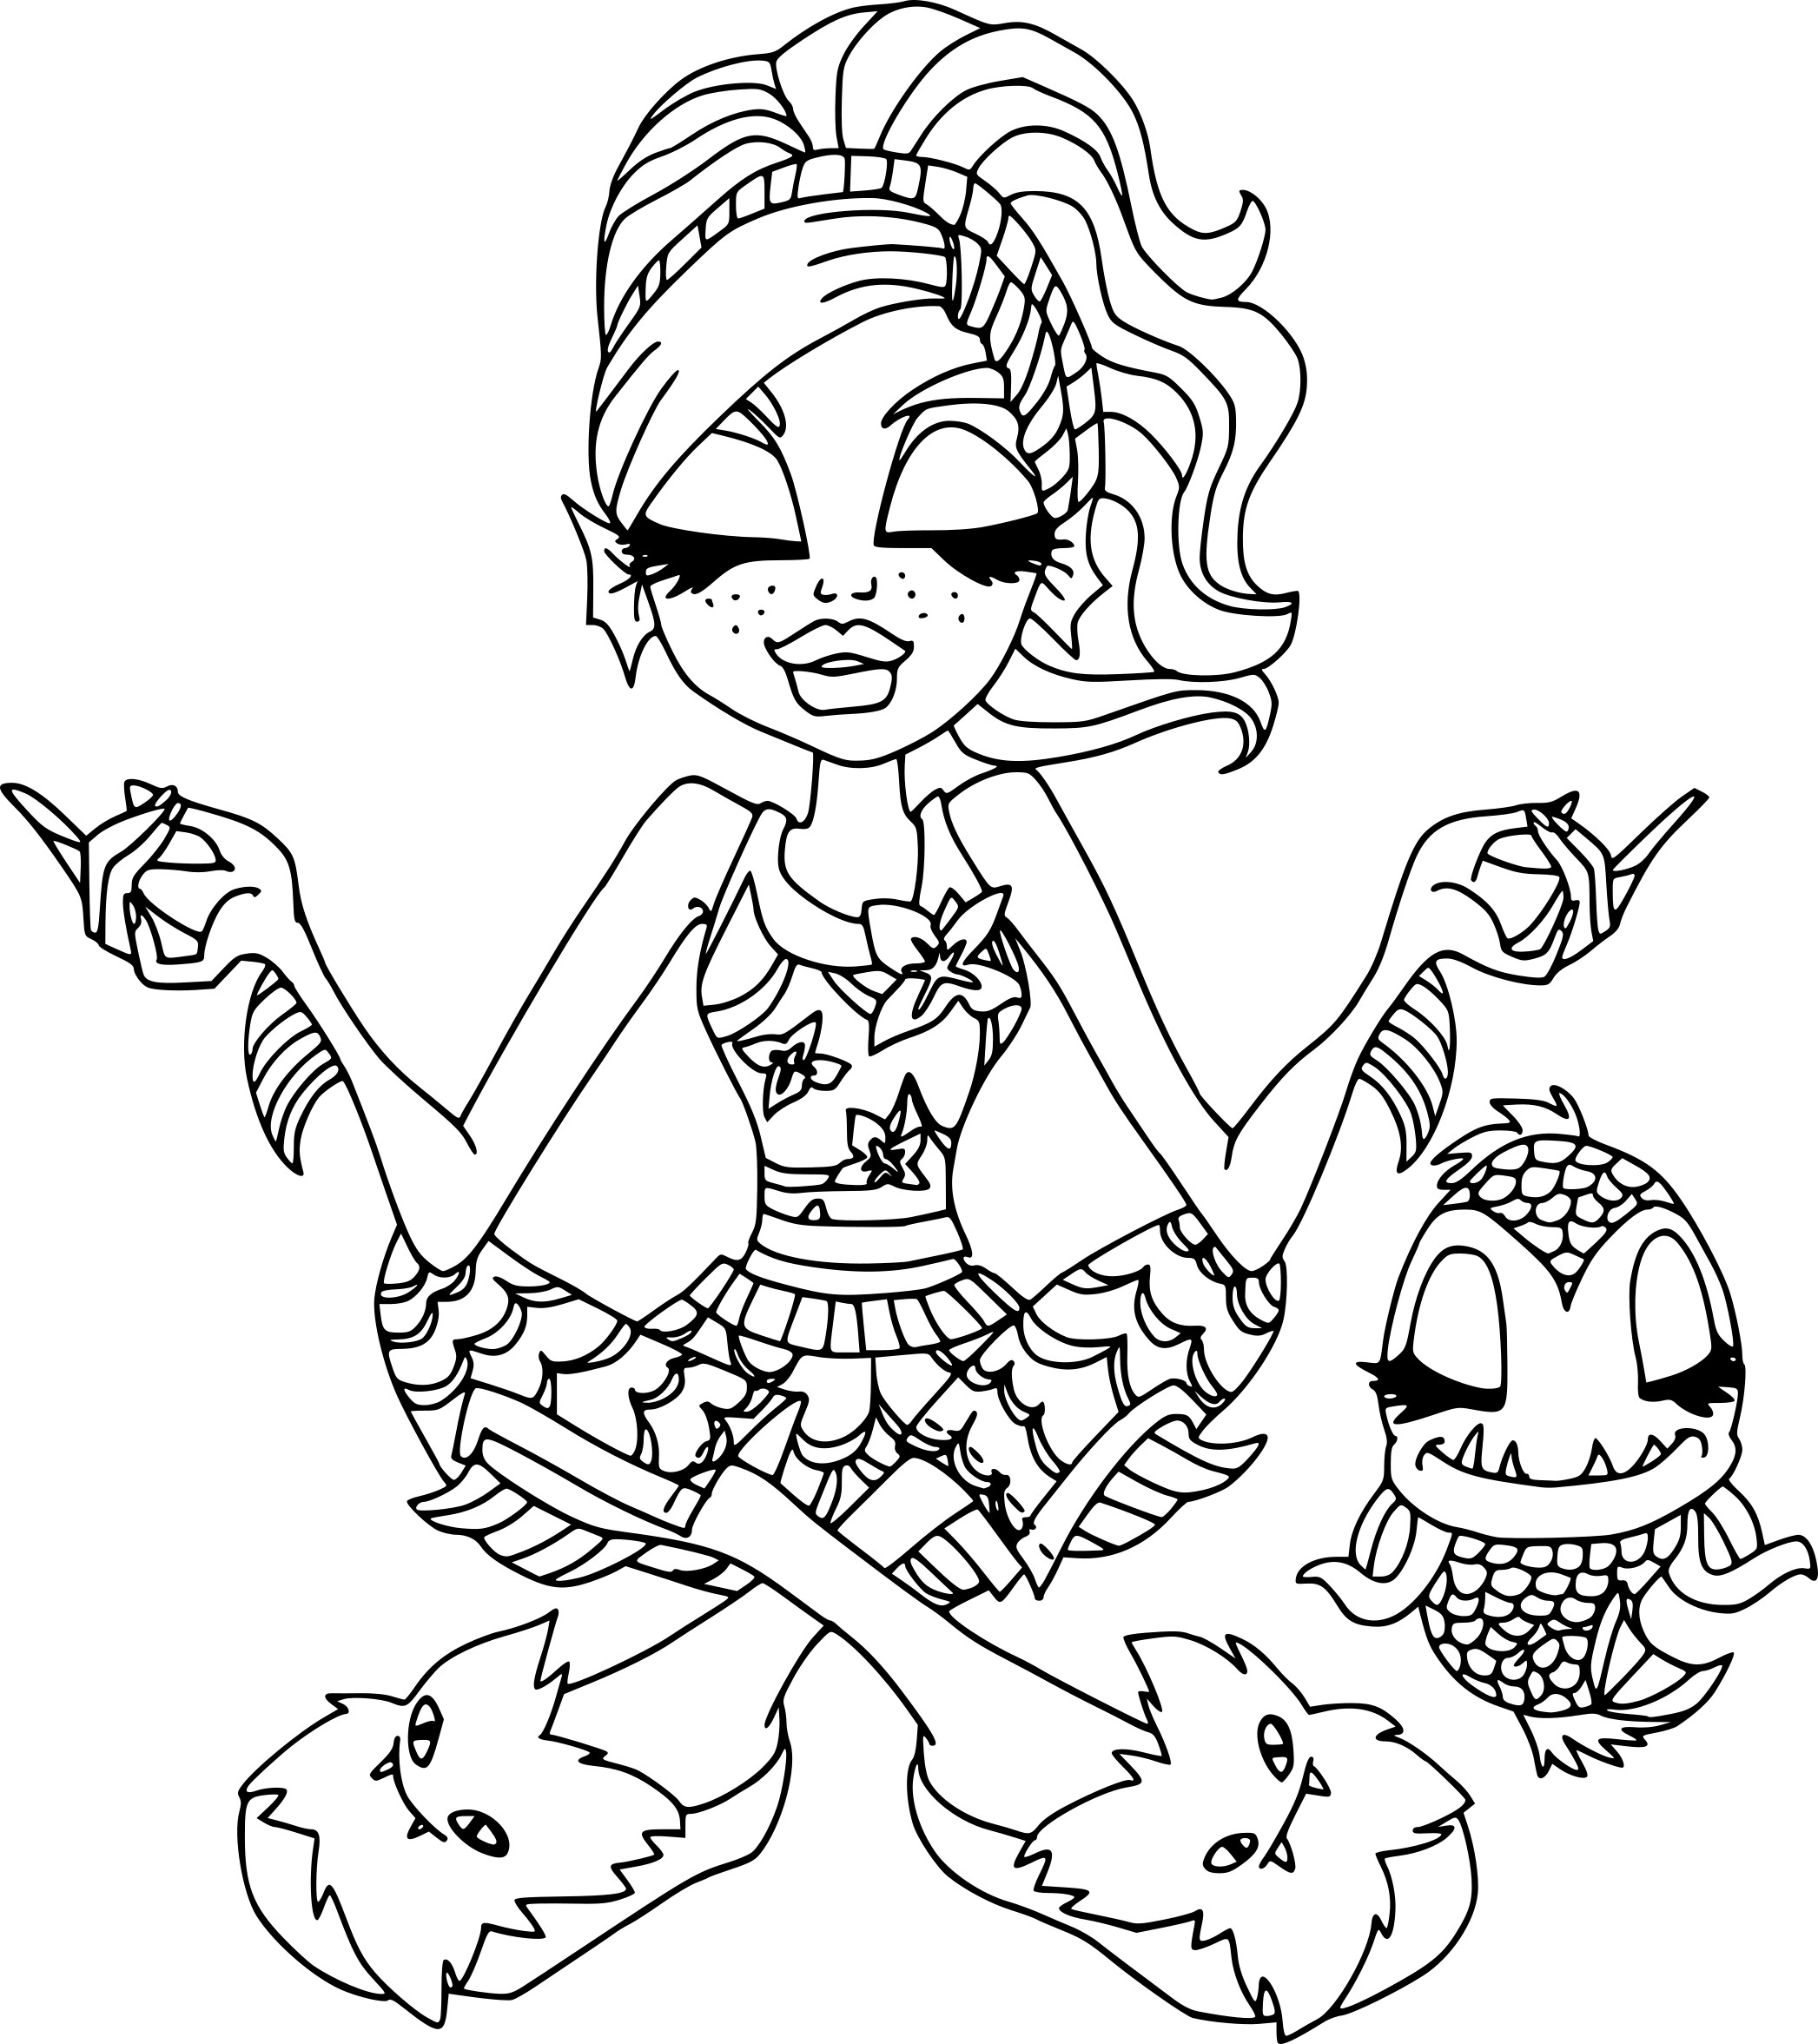 Élégant Dessin A Colorier Monster High A Imprimer